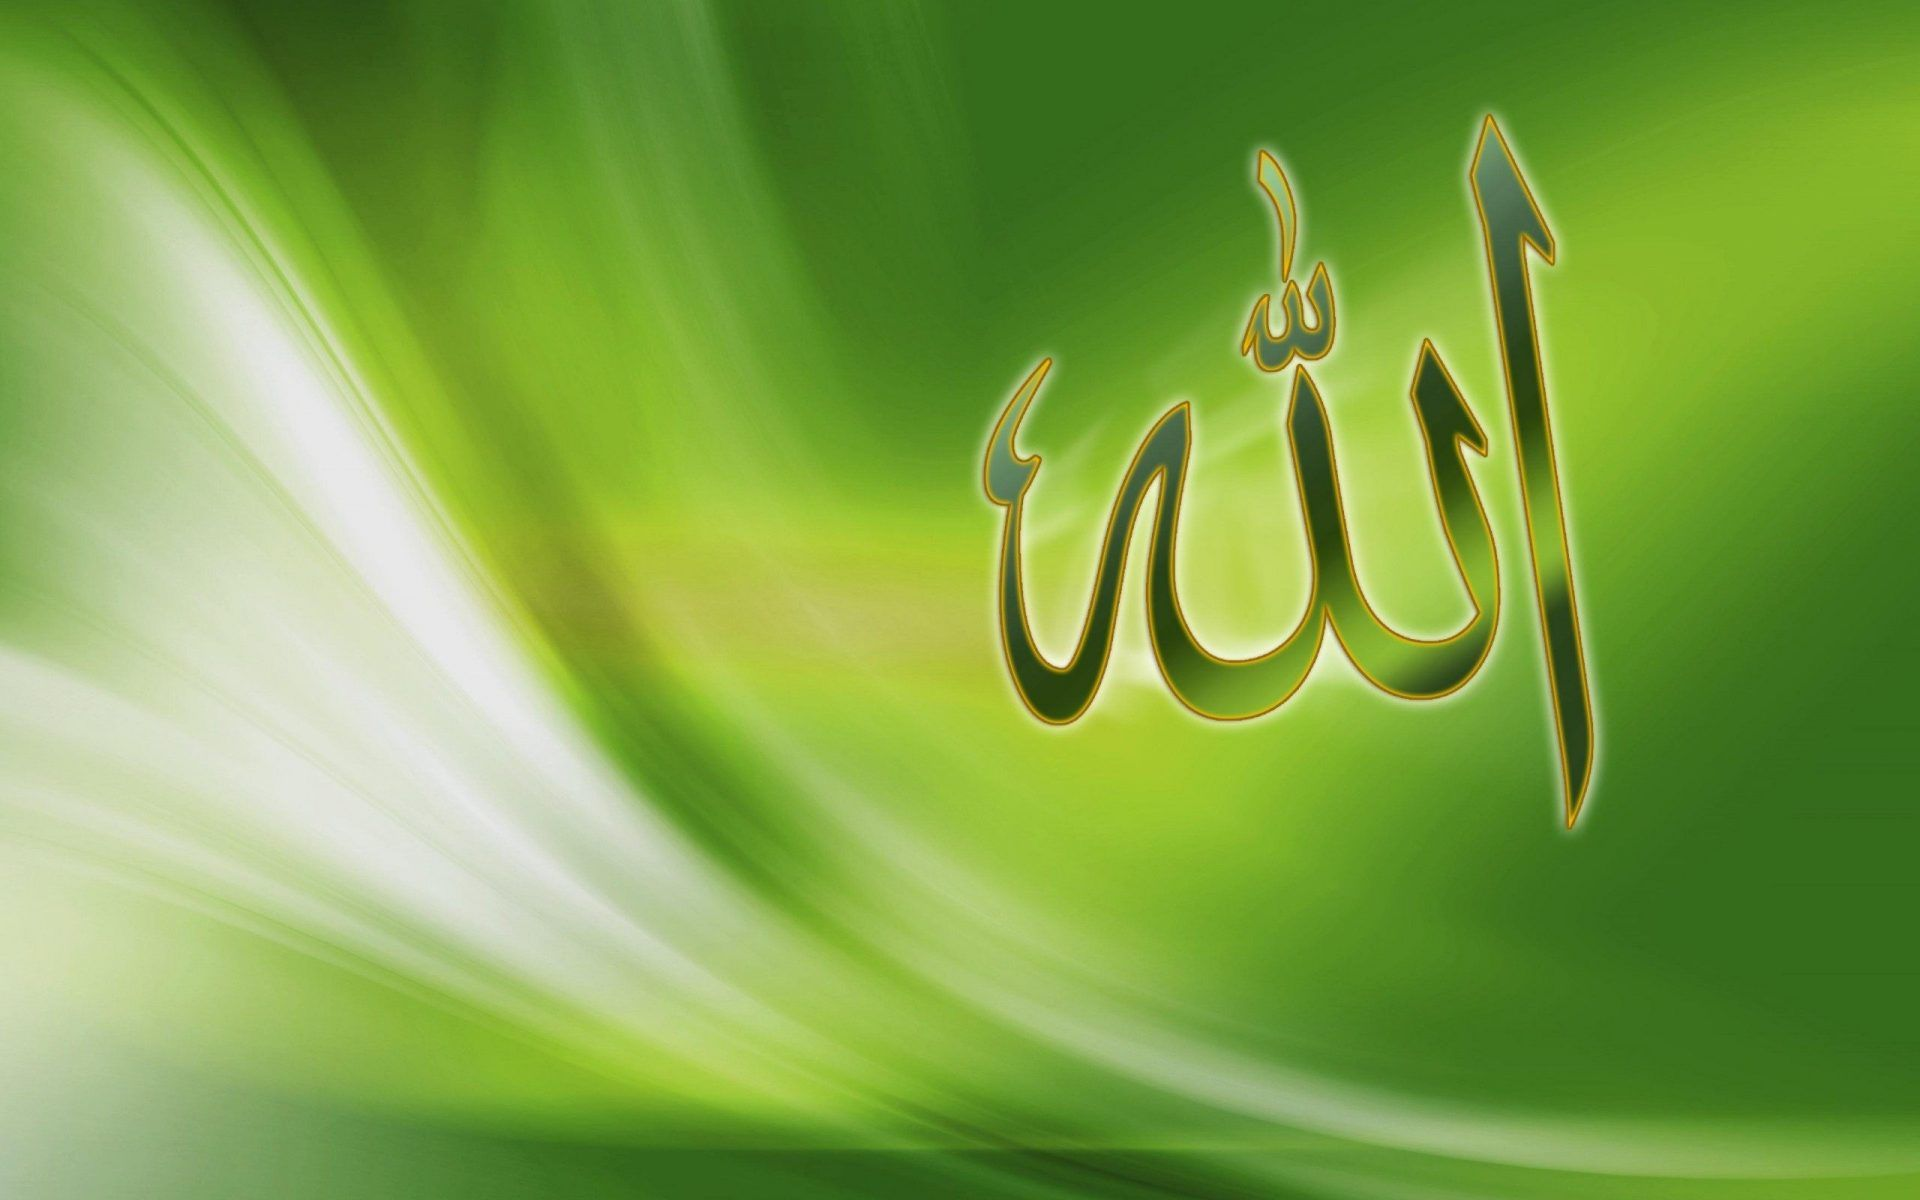 Full hd allah name wallpaper desktop wallpaper download free for widescreen mobile table - Name wallpapers free download ...